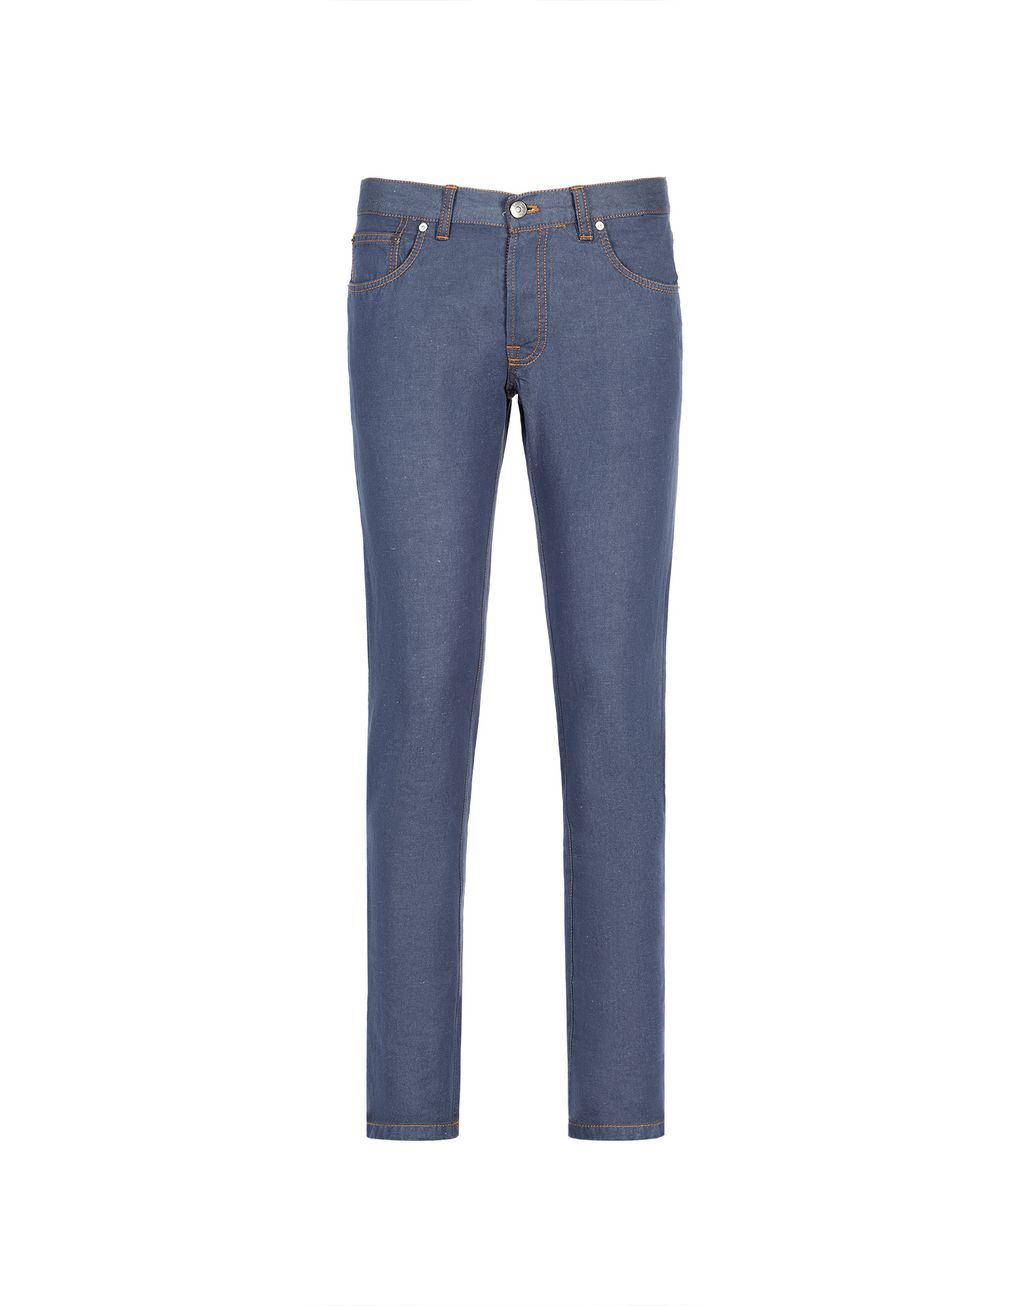 BRIONI Bluette Slim Fit Cotton and Linen Aneto Jeans  Denim [*** pickupInStoreShippingNotGuaranteed_info ***] f